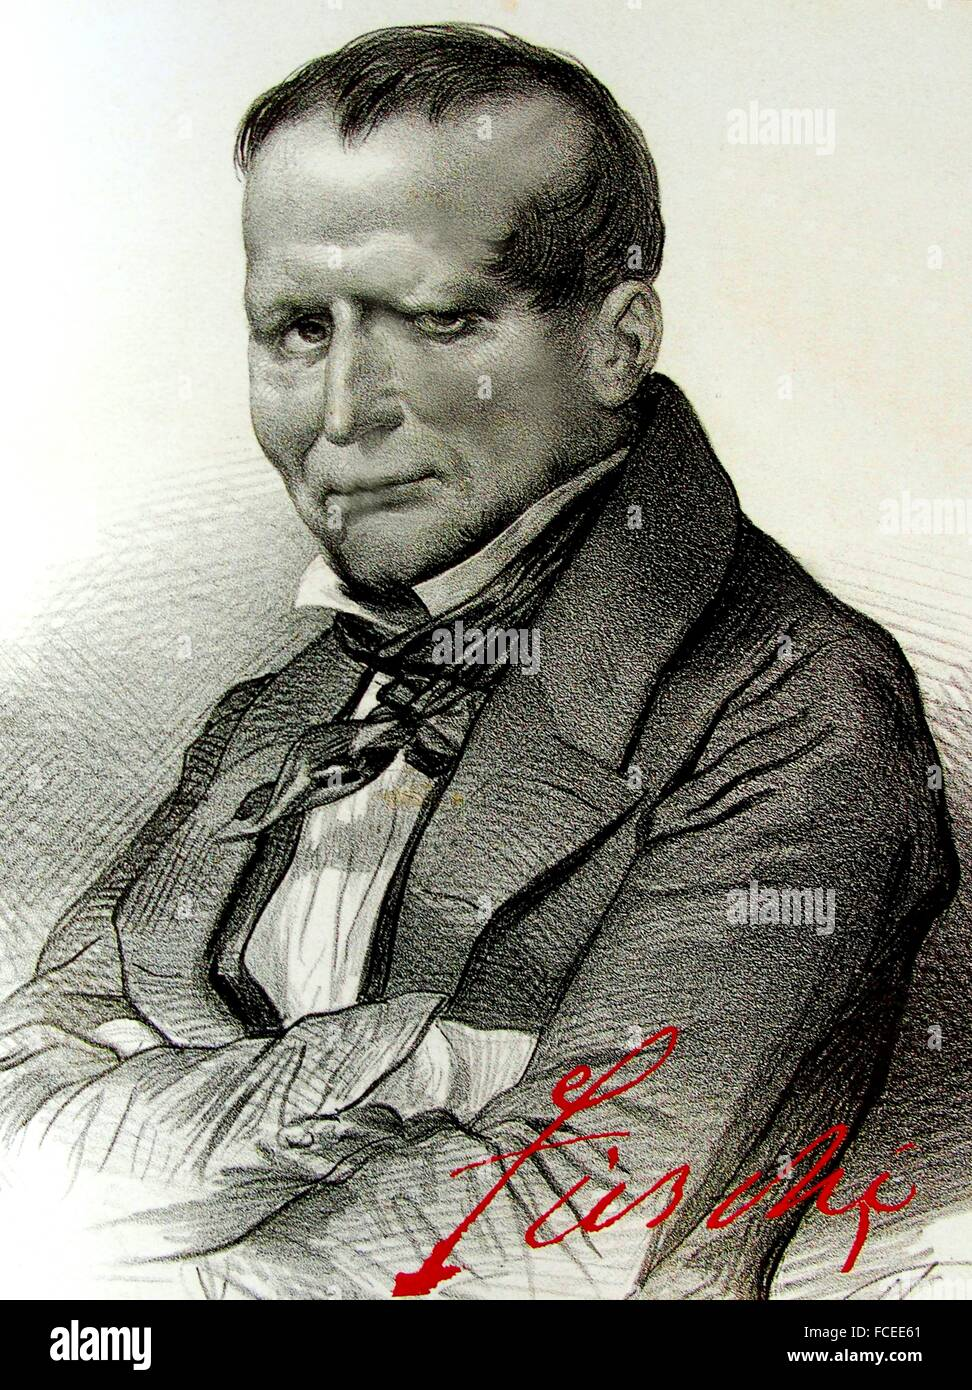 Giuseppe Marco Fieschi (13 December 1790 - 19 February 1836) was the chief conspirator in an attempt on the life - Stock Image